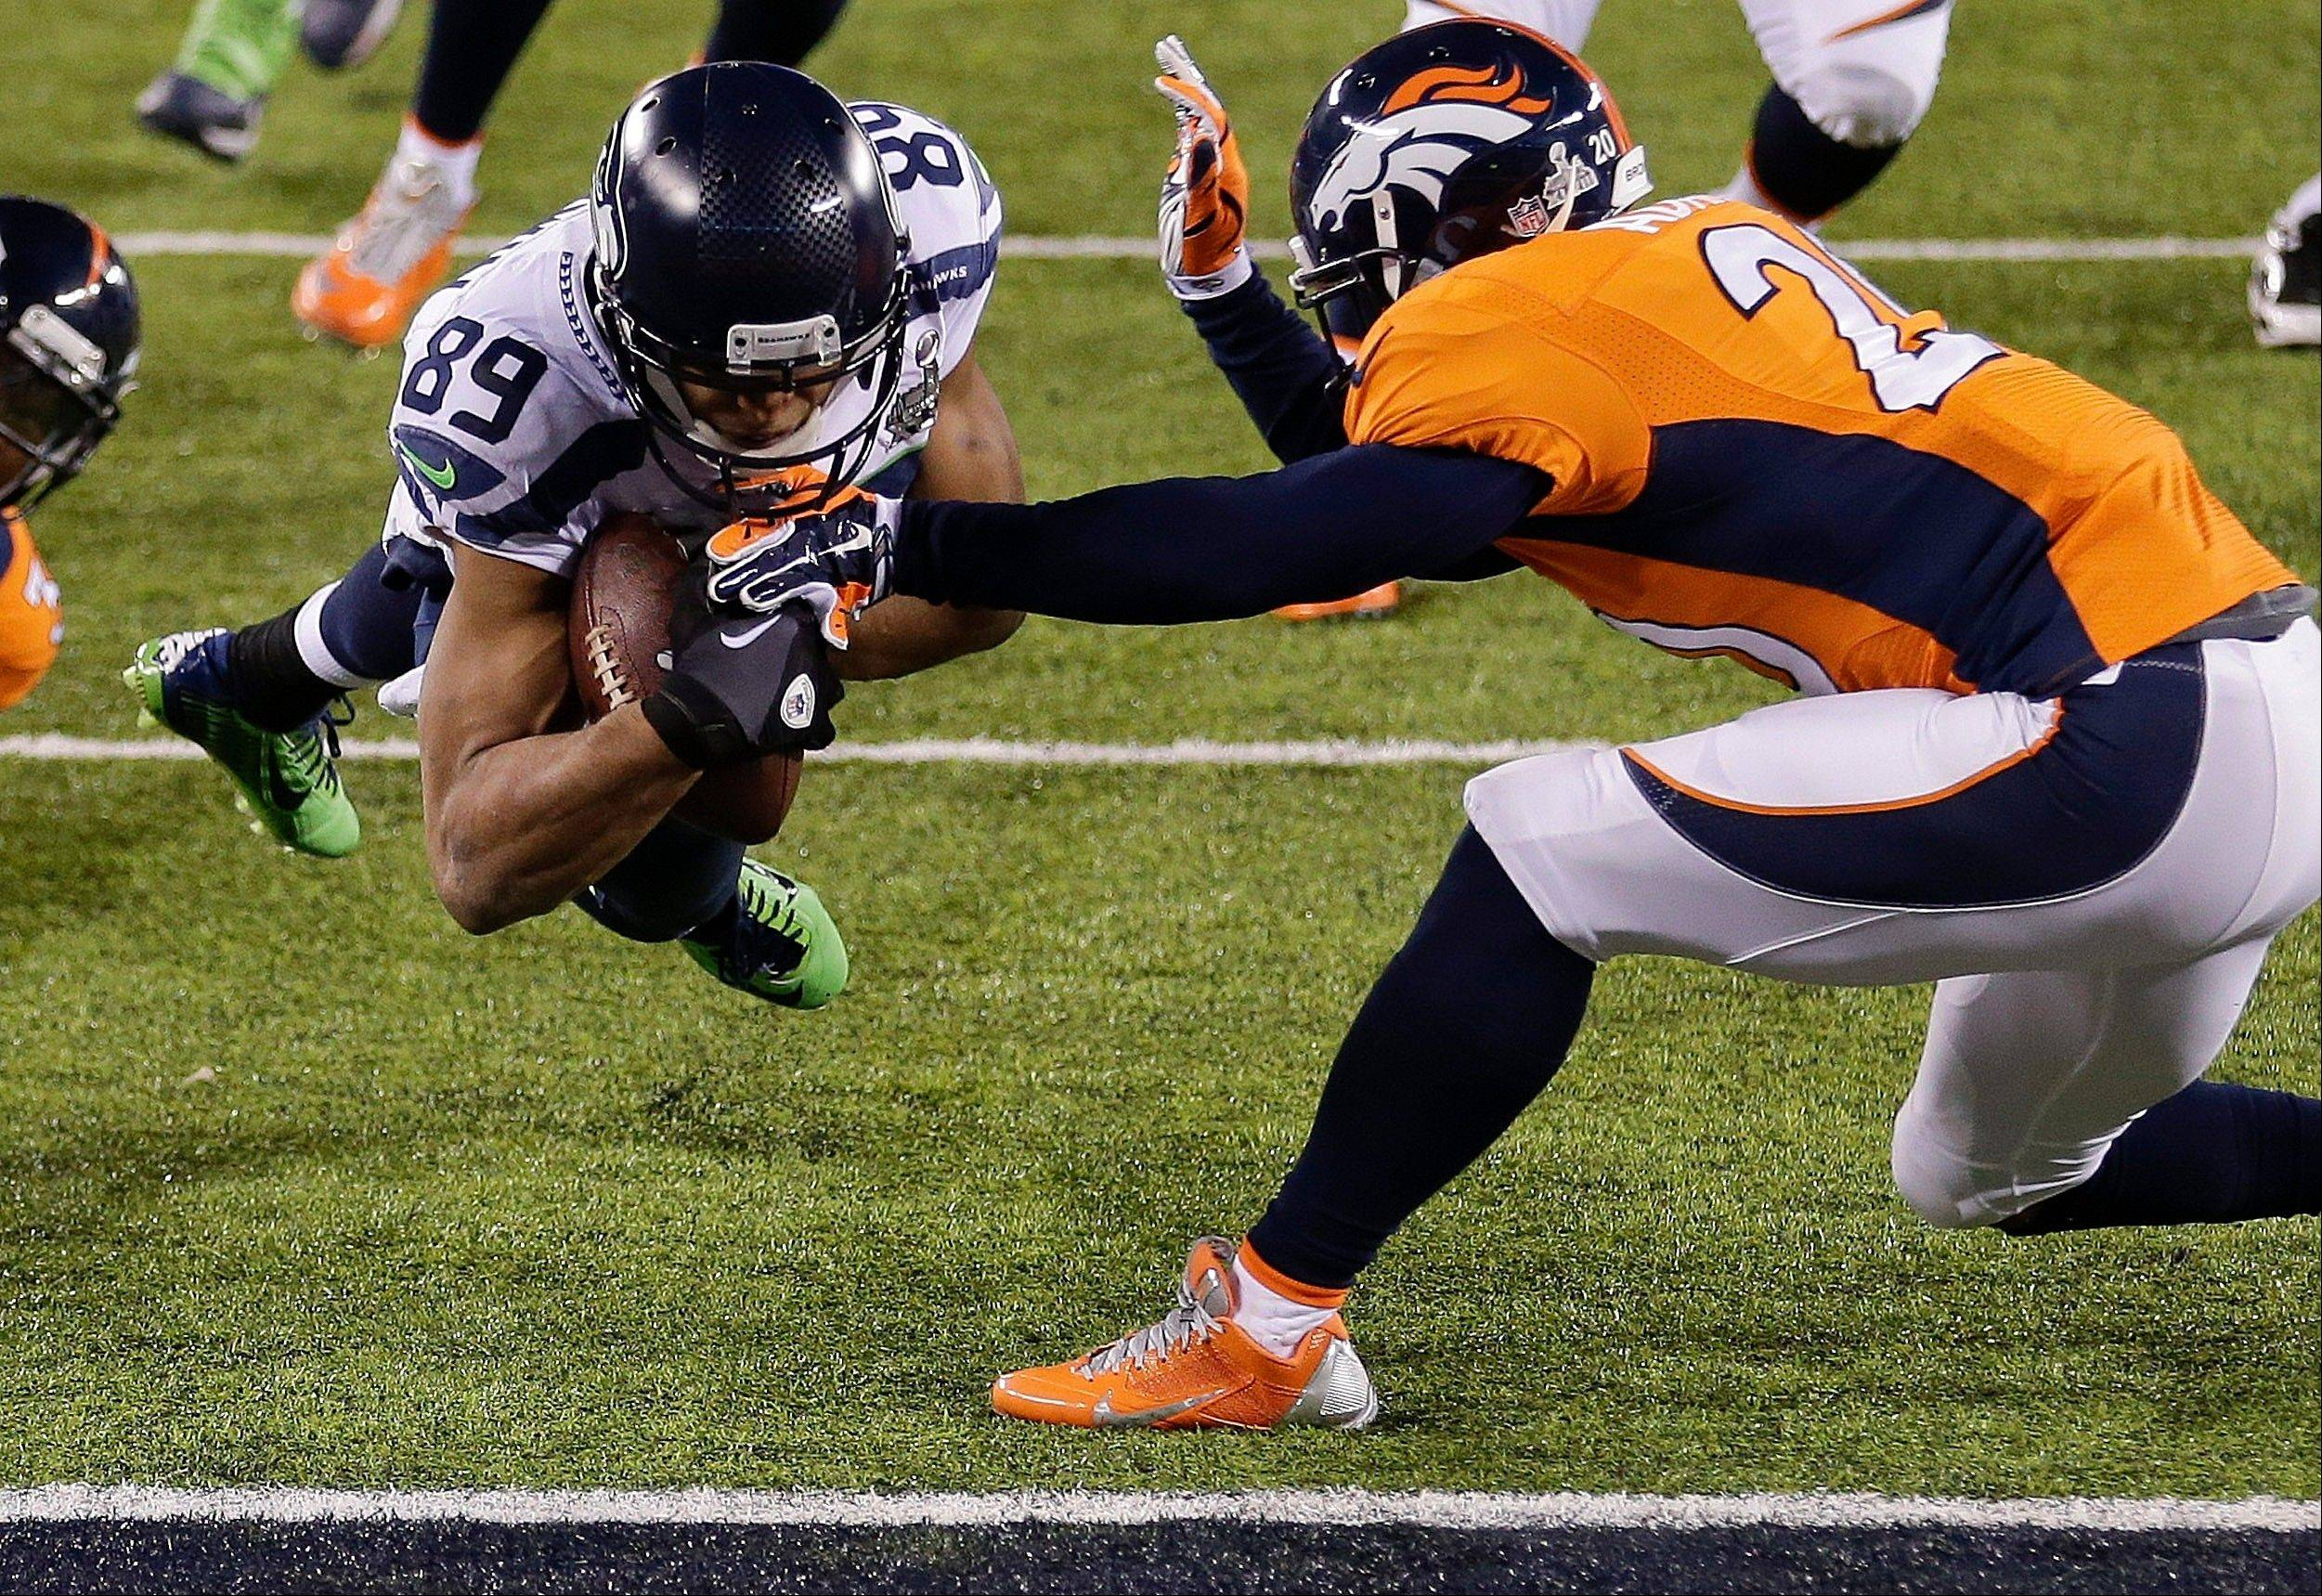 Seattle Seahawks wide receiver Doug Baldwin (89) dives into the end zone for a touchdown against Denver Broncos free safety Mike Adams (20) during the second half.